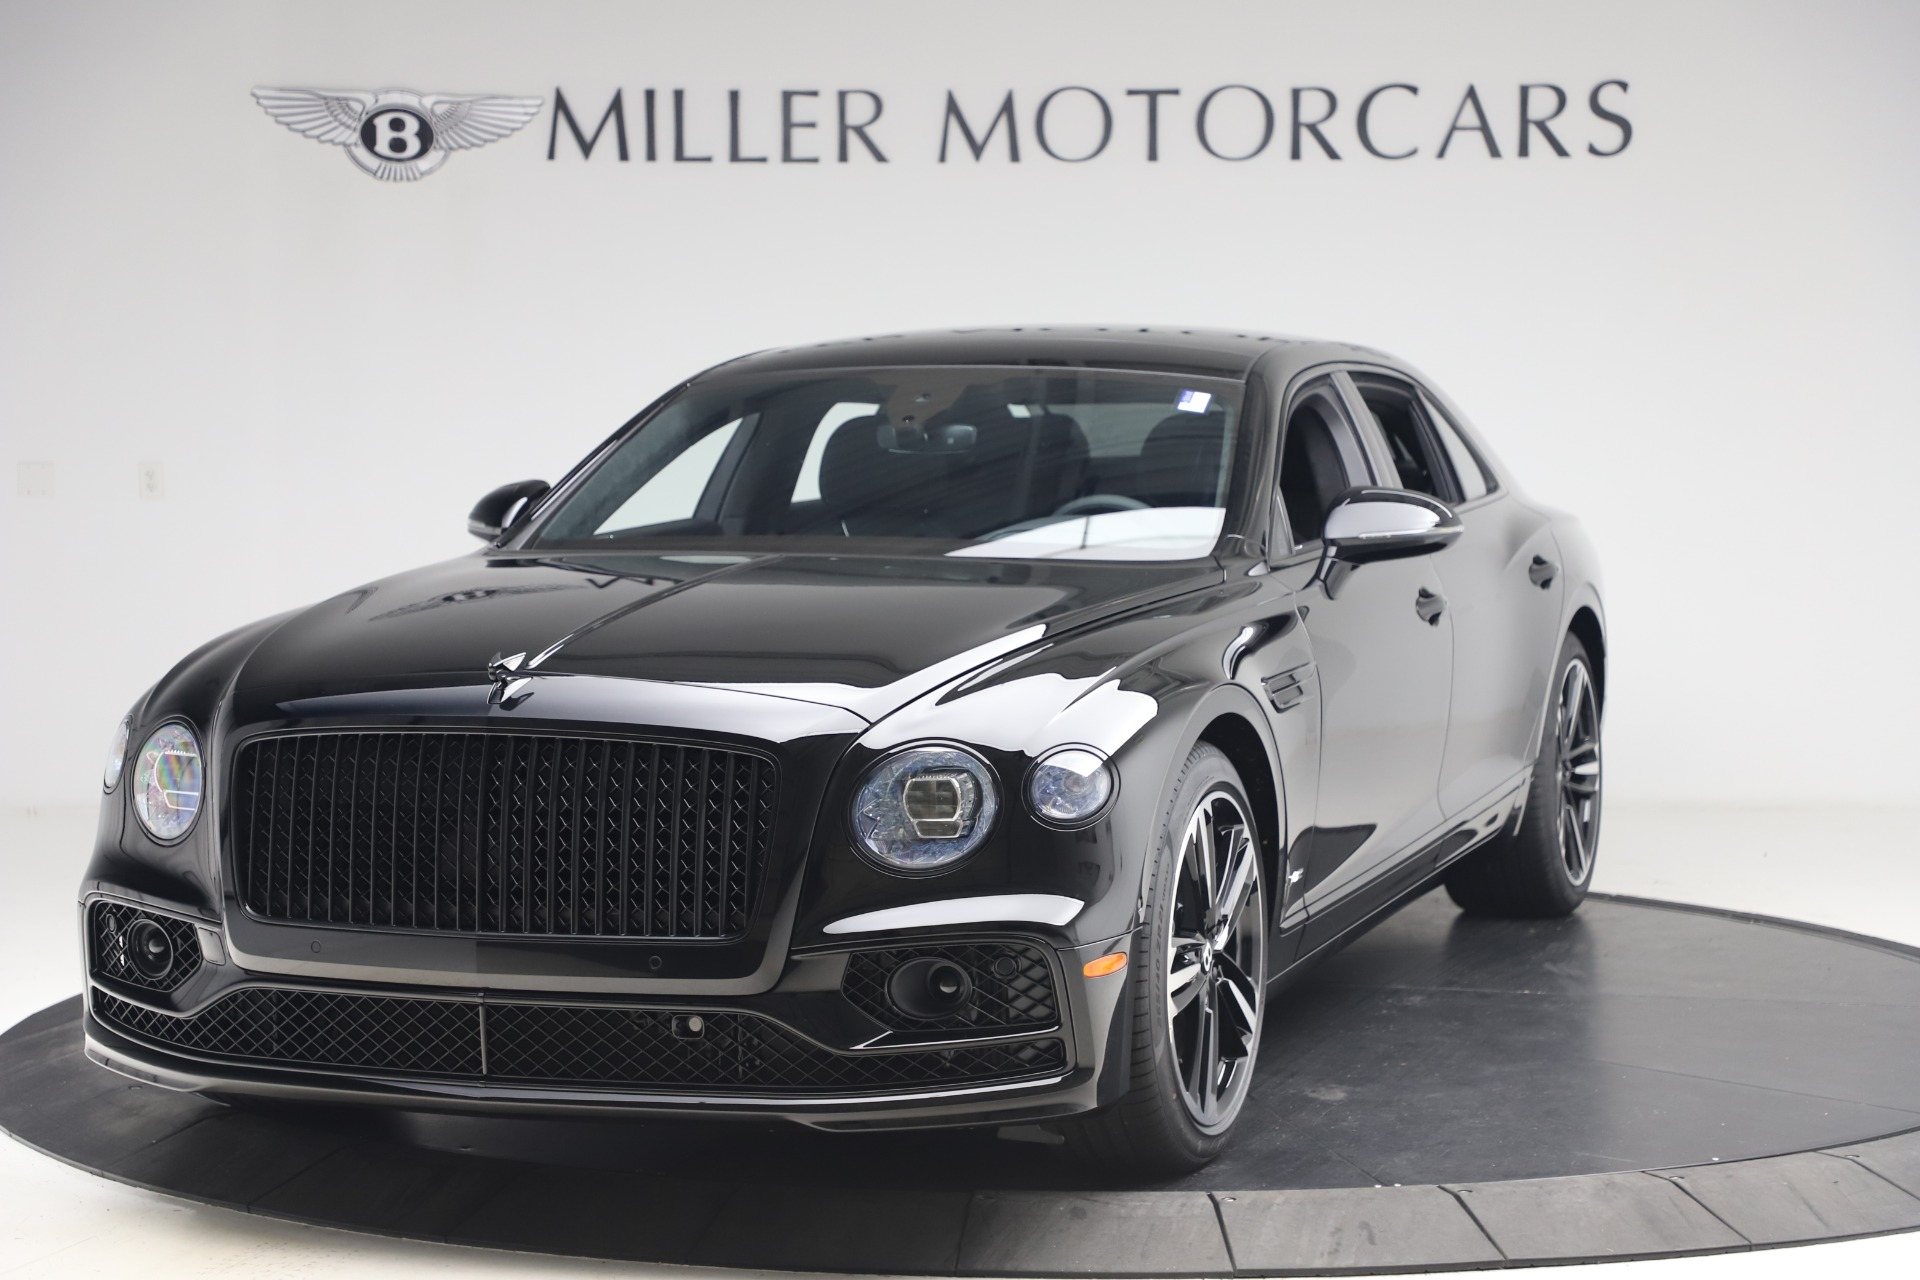 New 2020 Bentley Flying Spur W12 for sale $261,615 at Aston Martin of Greenwich in Greenwich CT 06830 1